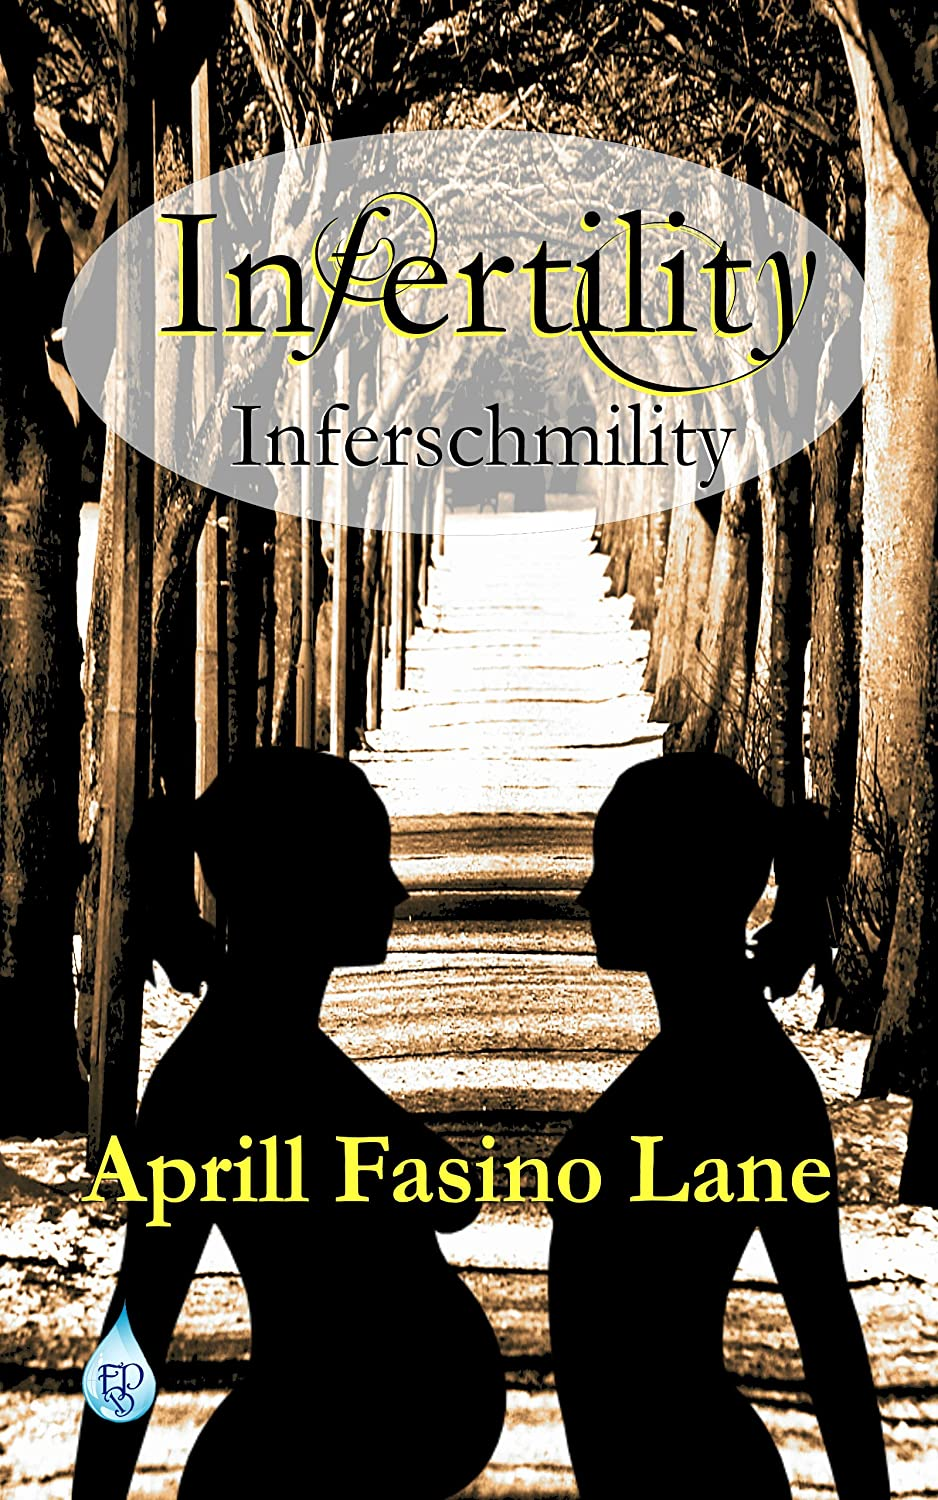 Image: Infertility Inferschmility, by Aprill Fasino Lane. Published: Fountain Blue Publishing (December 7, 2013)